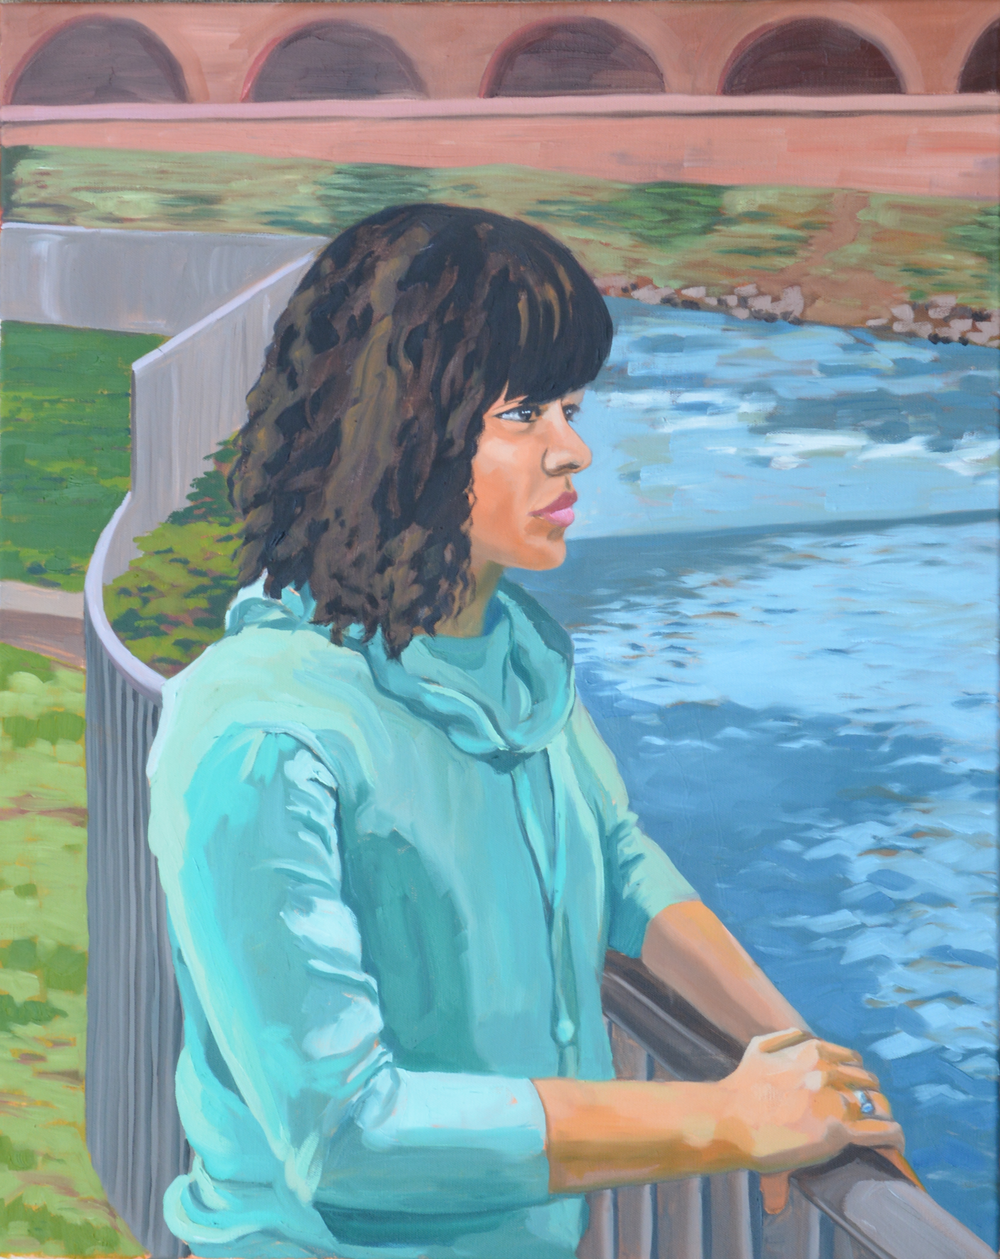 """Untitled (Thailee), 24x30"""", oil on canvas, 2016"""